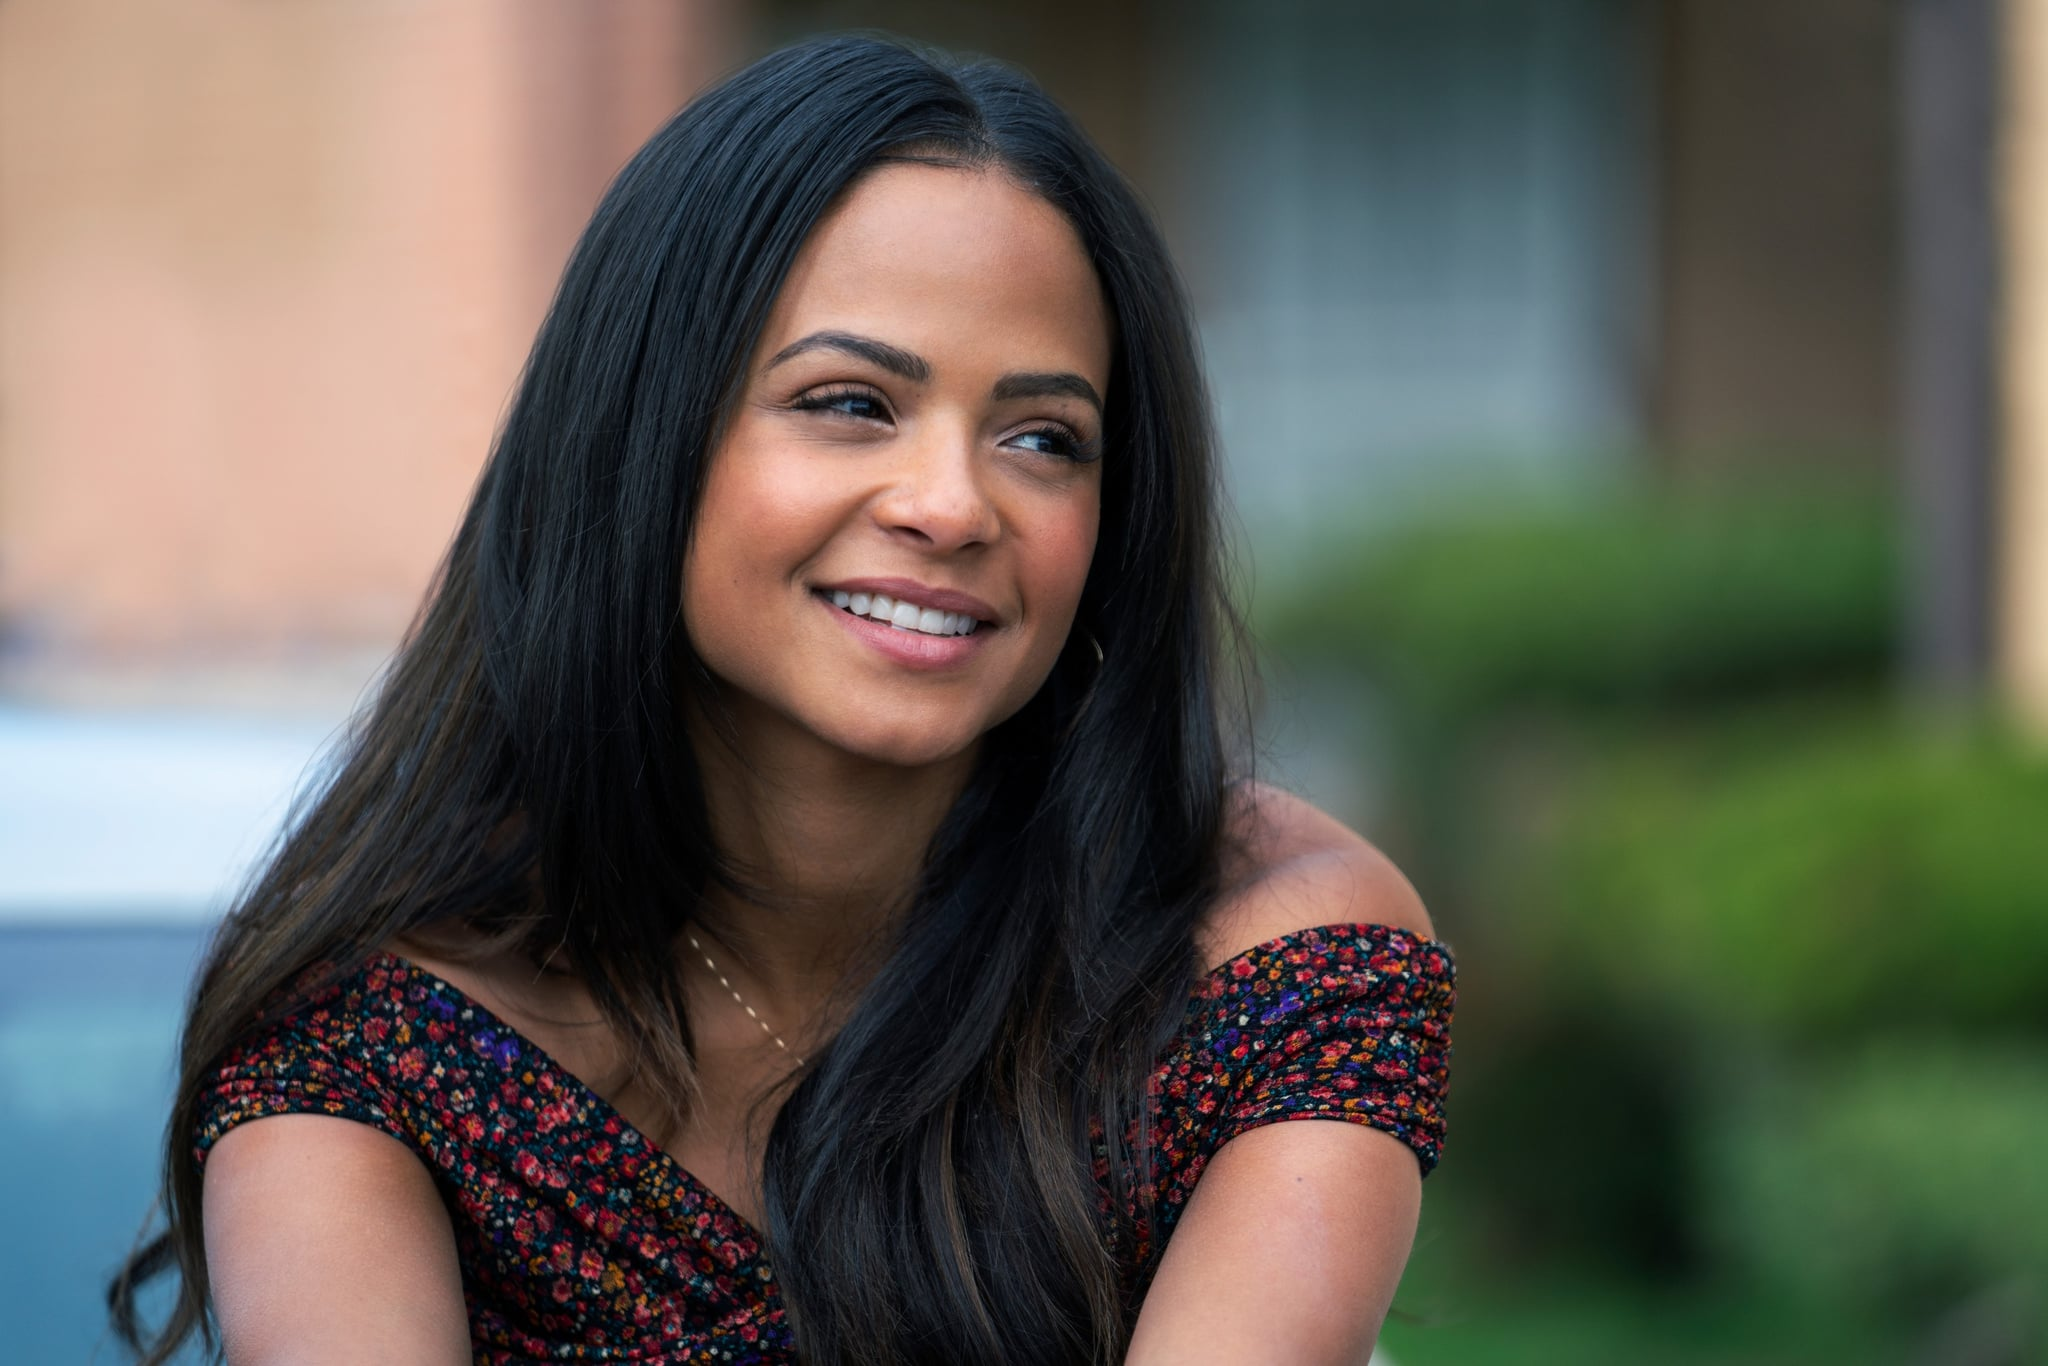 SOUNDTRACK, Christina Milian, (Season 1, ep. 105, aired Dec. 18, 2019). photo: Parrish Lewis / Netflix / Courtesy Everett Collection